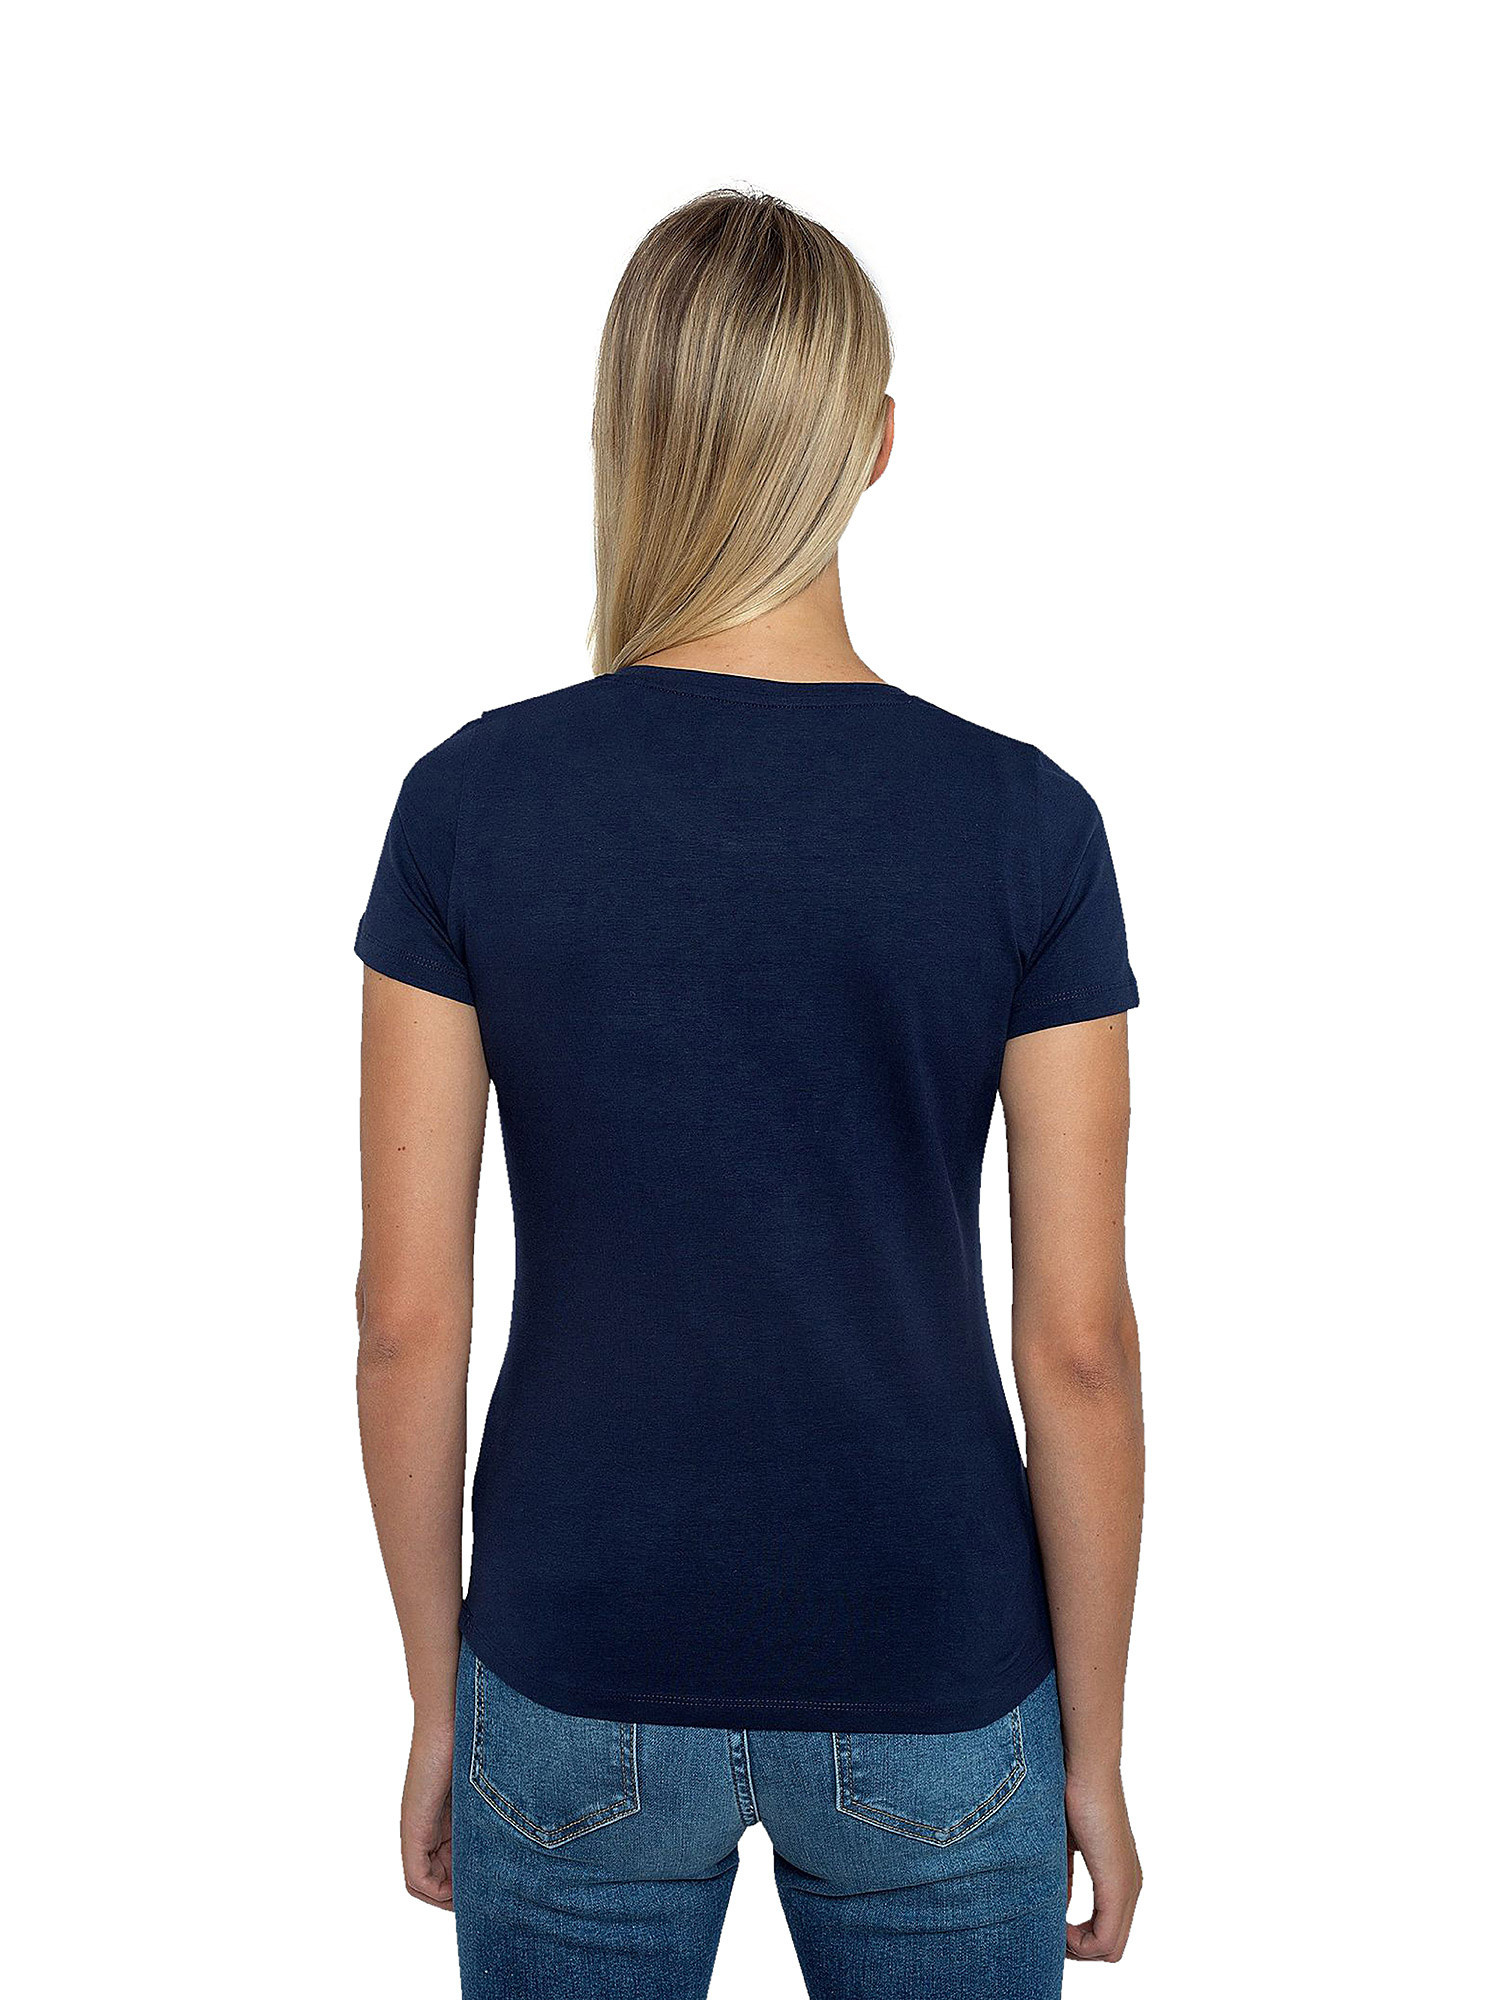 T-Shirt in LYCRA, Blu/Rosso, large image number 2